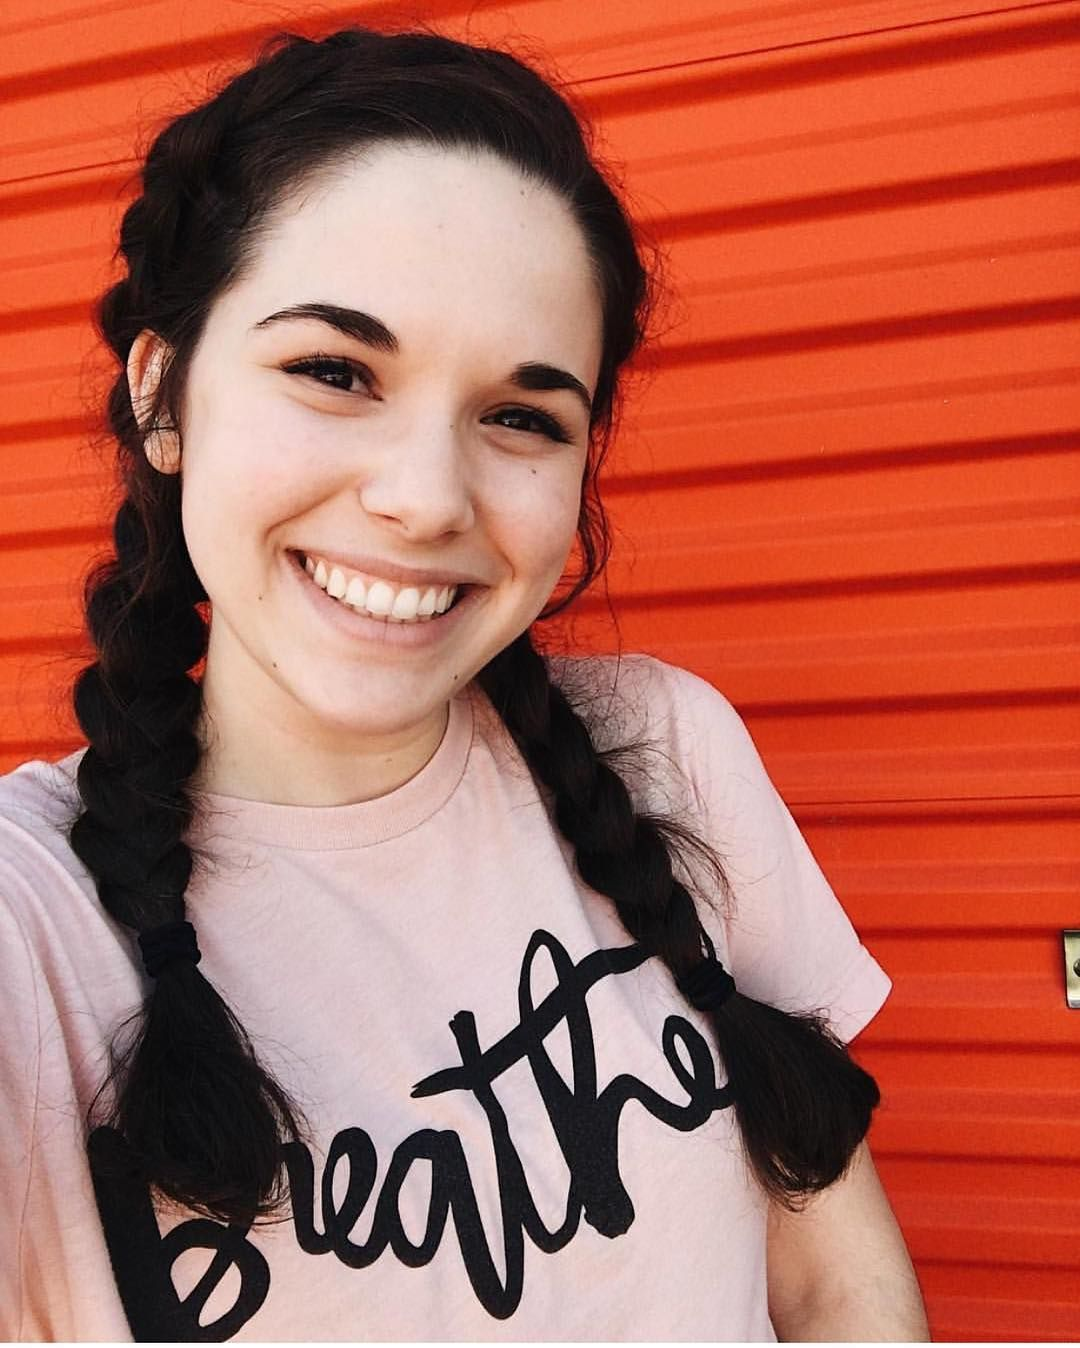 You canut help but fall in love with this peach tshirt itus super